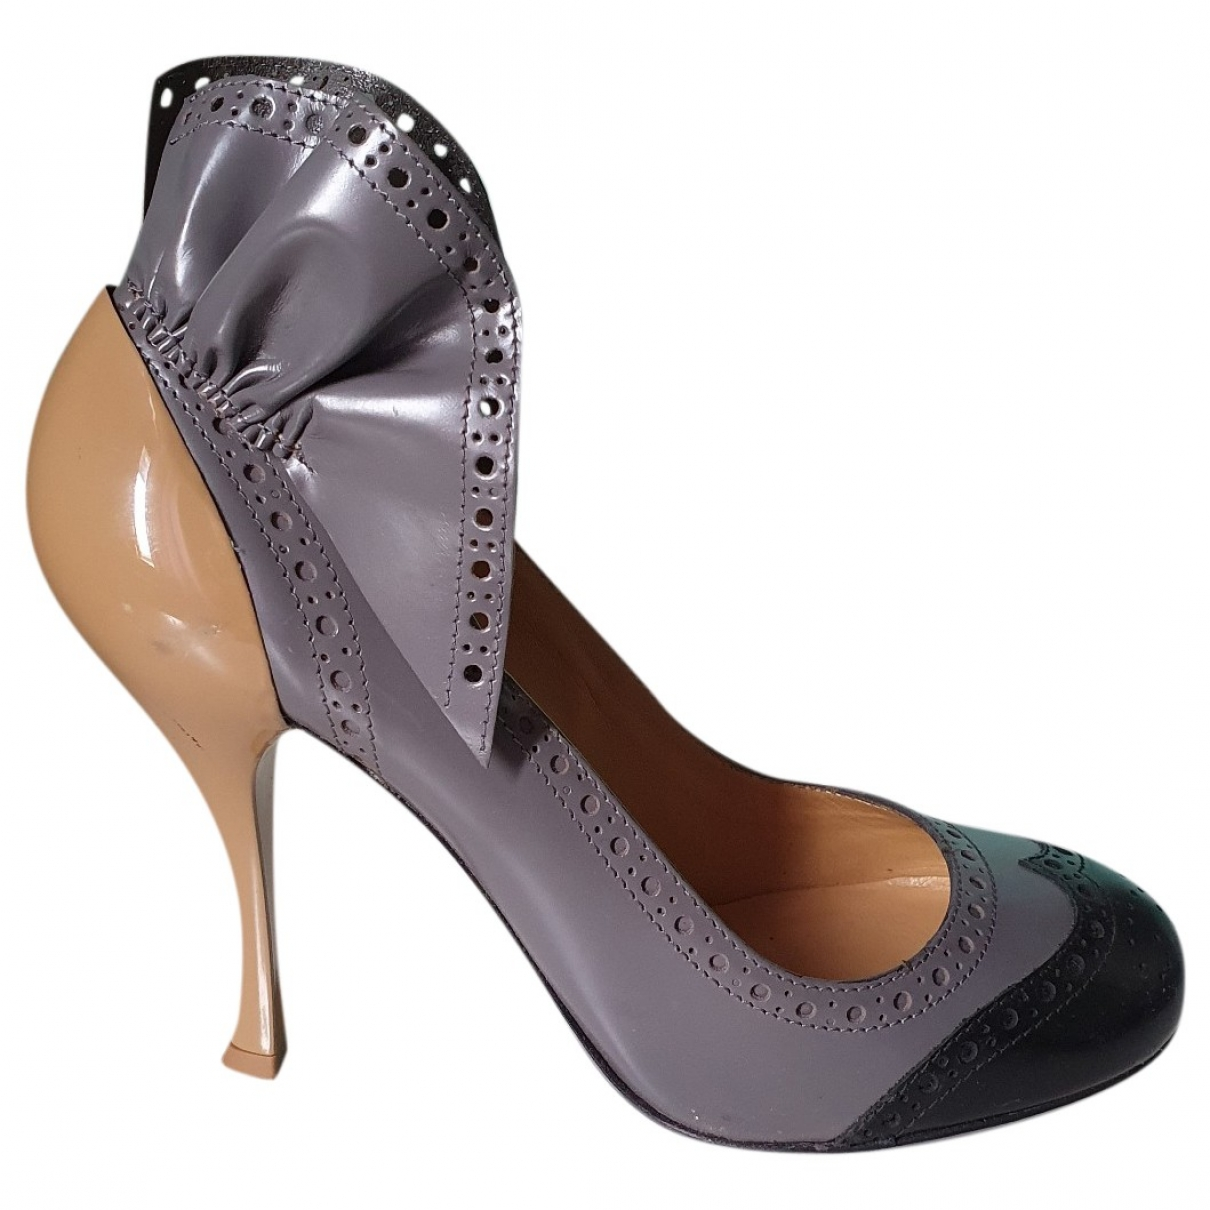 Miu Miu \N Grey Leather Heels for Women 37.5 EU